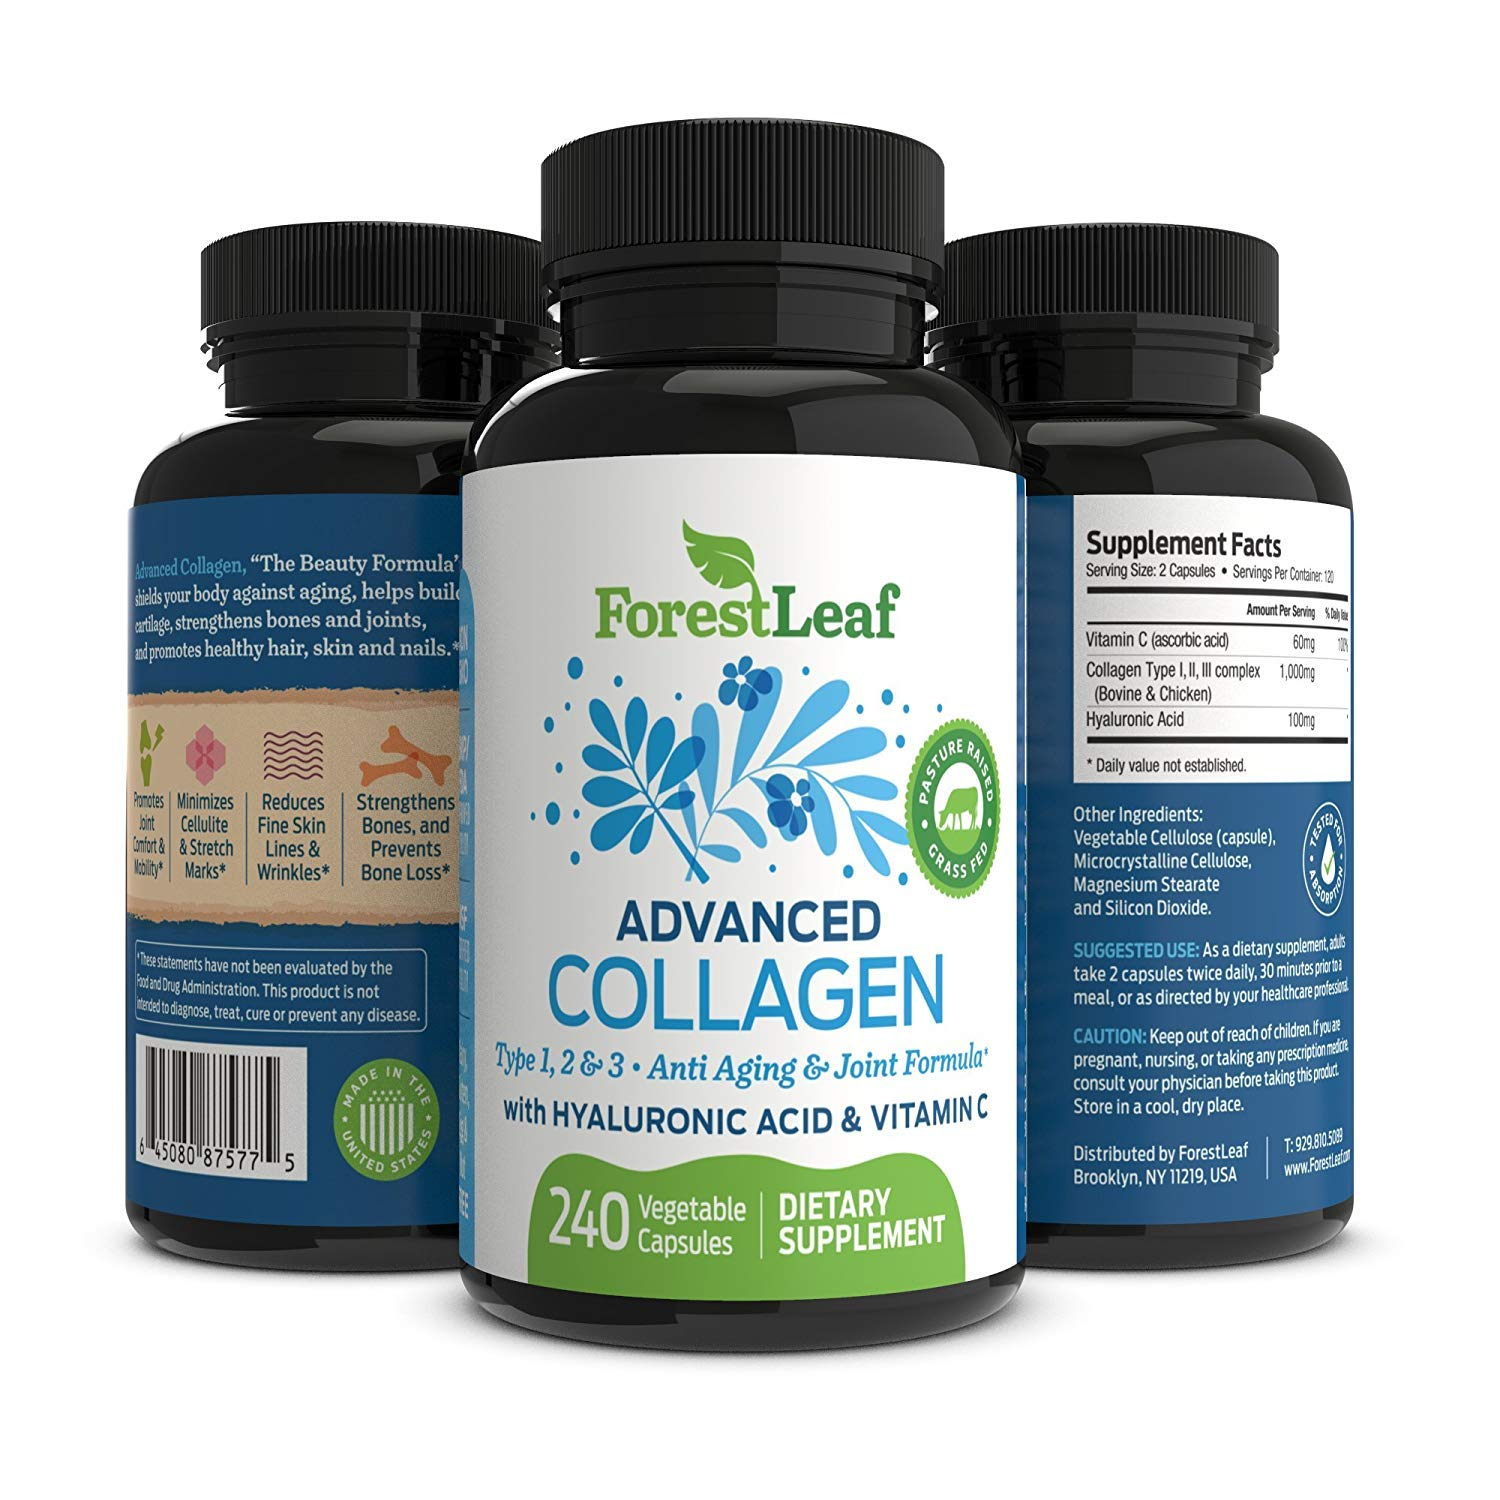 Amazon.com: Advanced Collagen Supplement, Type 1, 2 and 3 with Hyaluronic Acid and Vitamin C - Anti Aging Joint Formula - Boosts Hair, Nails and Skin Health ...